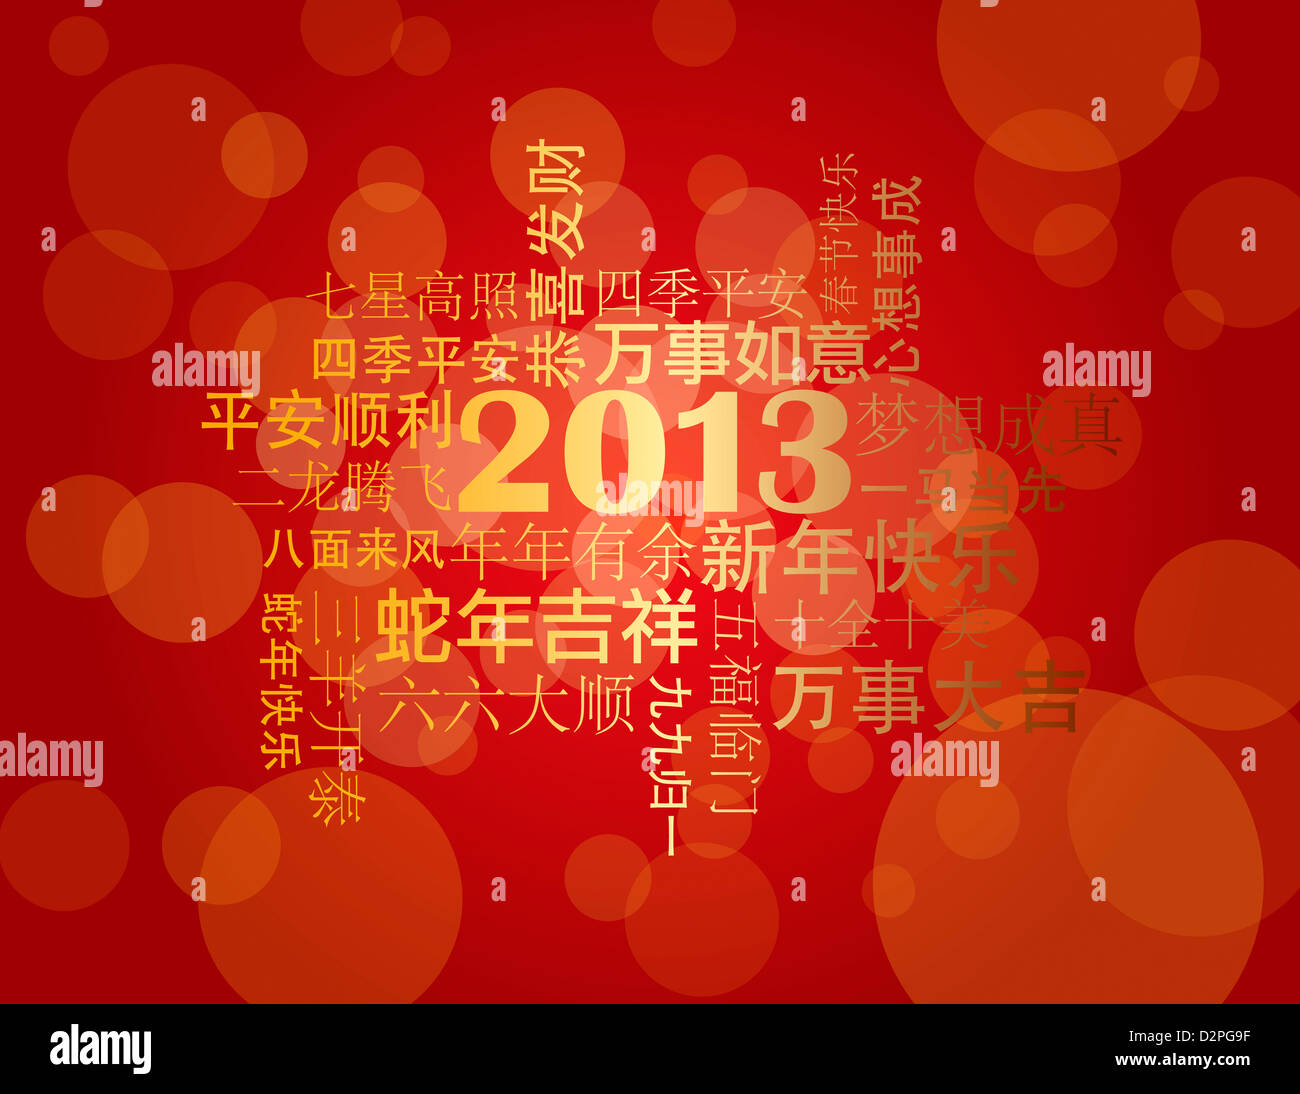 2013 happy chinese new year calligraphy writing of well wishes and 2013 happy chinese new year calligraphy writing of well wishes and greeting on a festive red and golden background illustration kristyandbryce Images